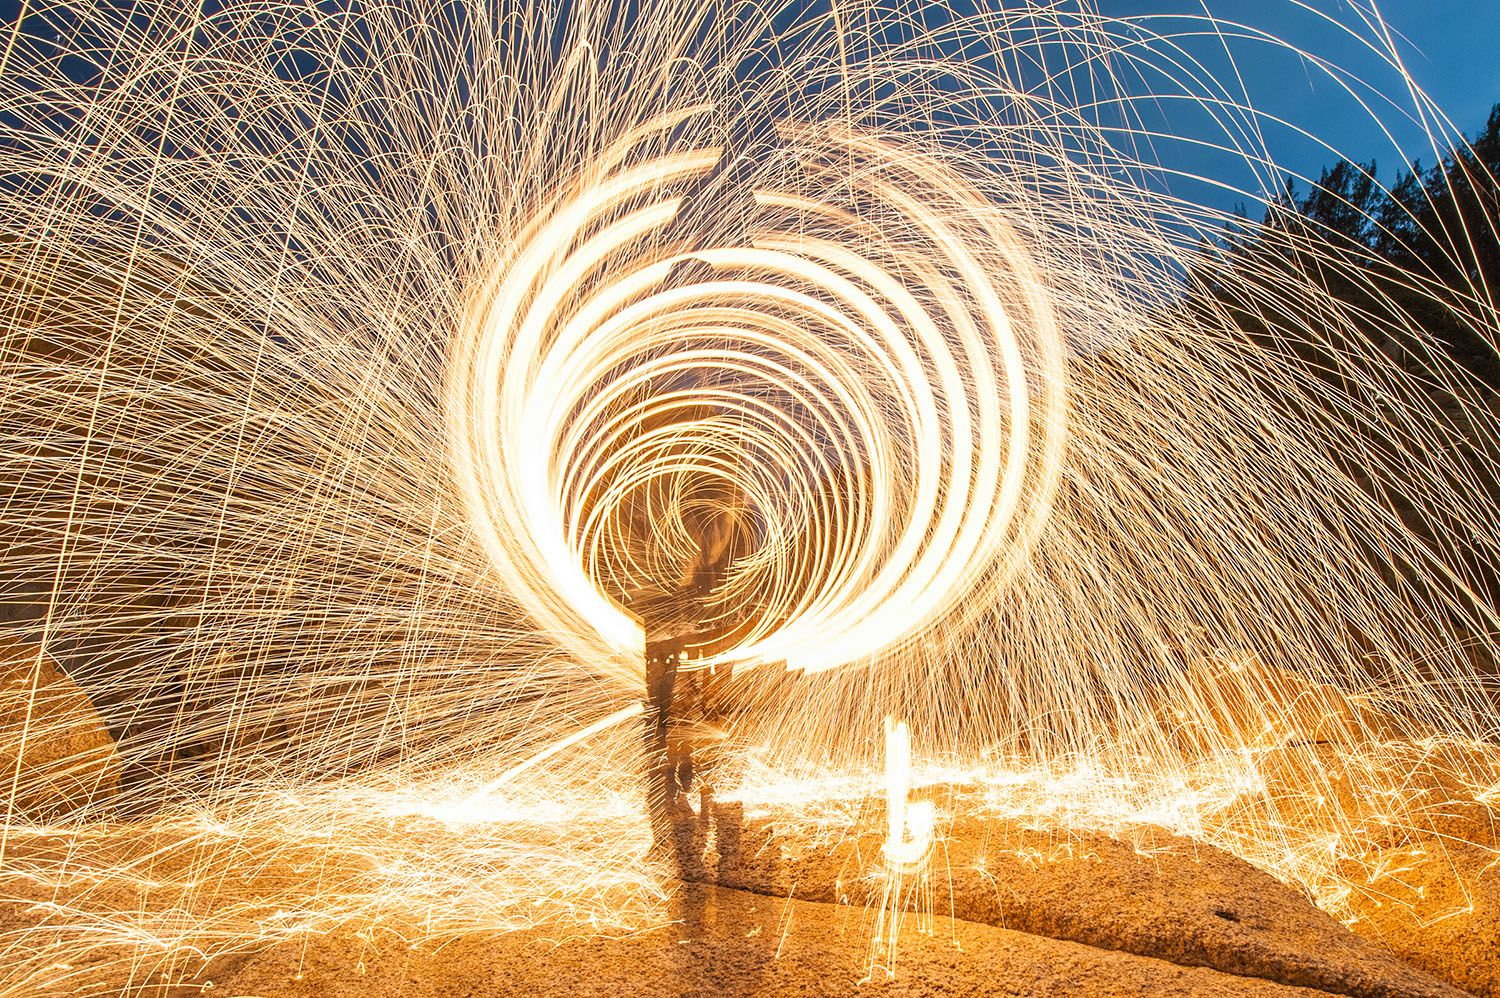 Pin by Bonnie Licklider on Steel Wool Photography | Steel